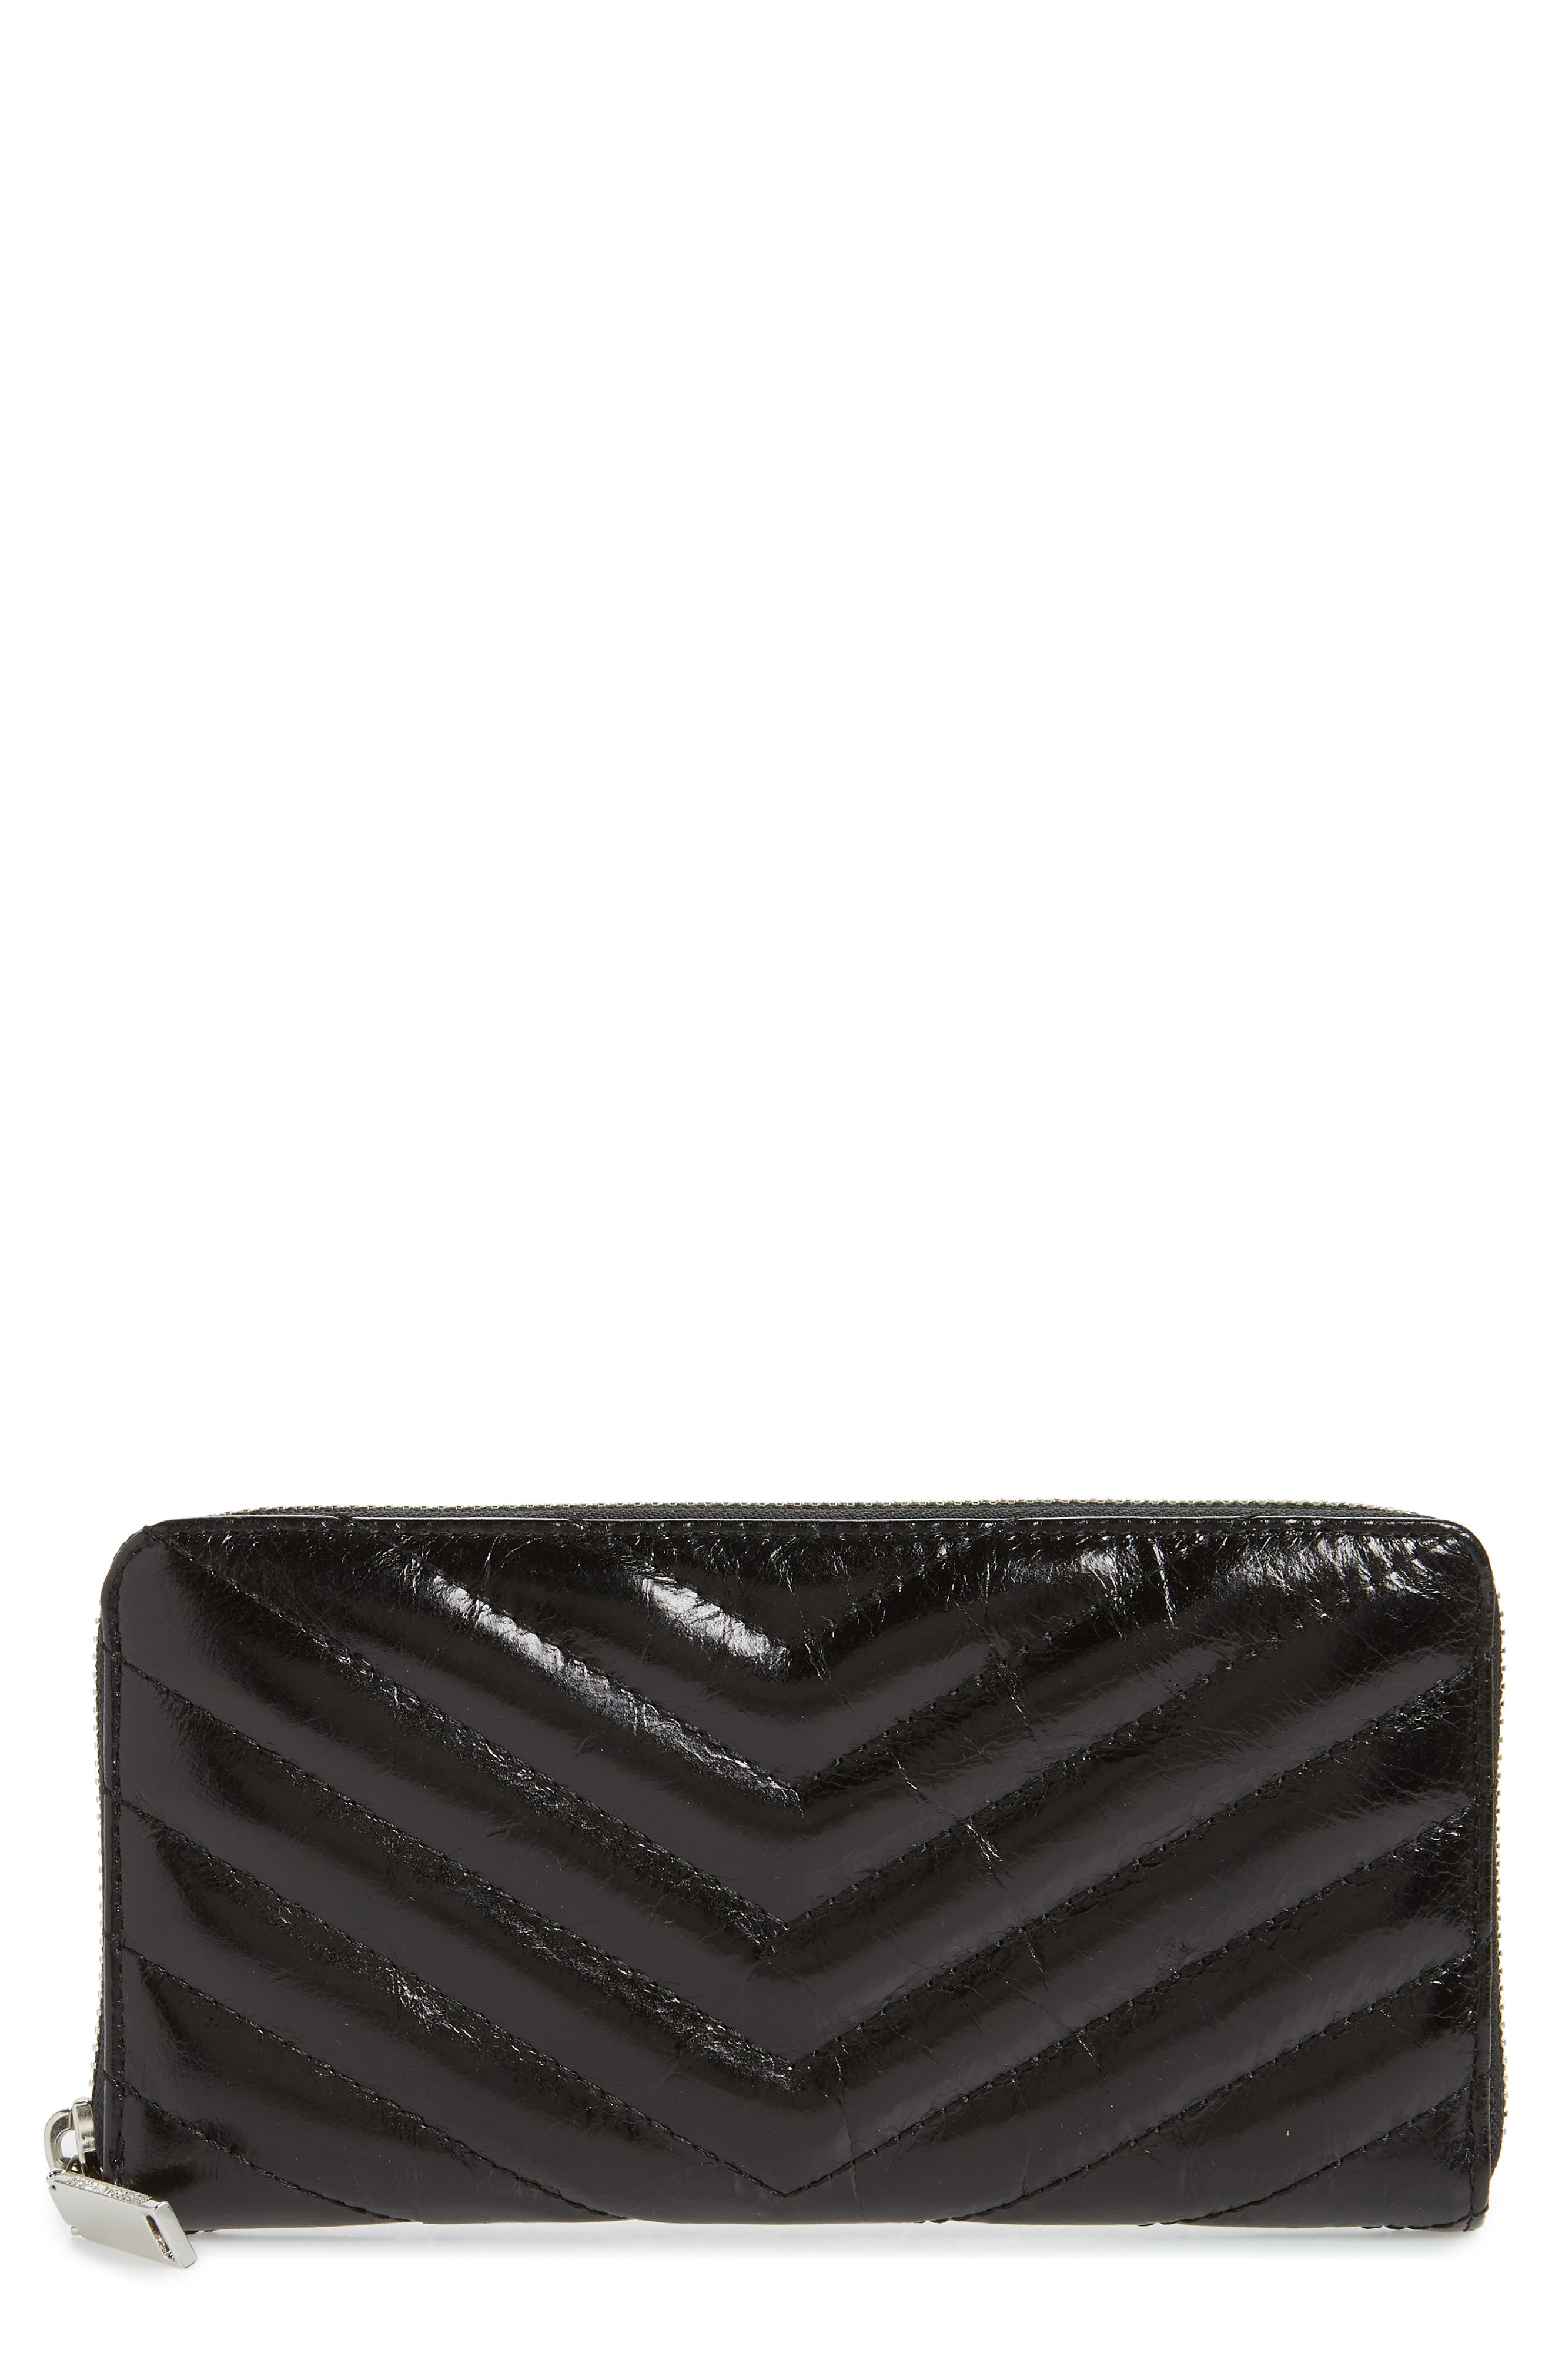 REBECCA MINKOFF Quilted Wallet, Main, color, BLACK